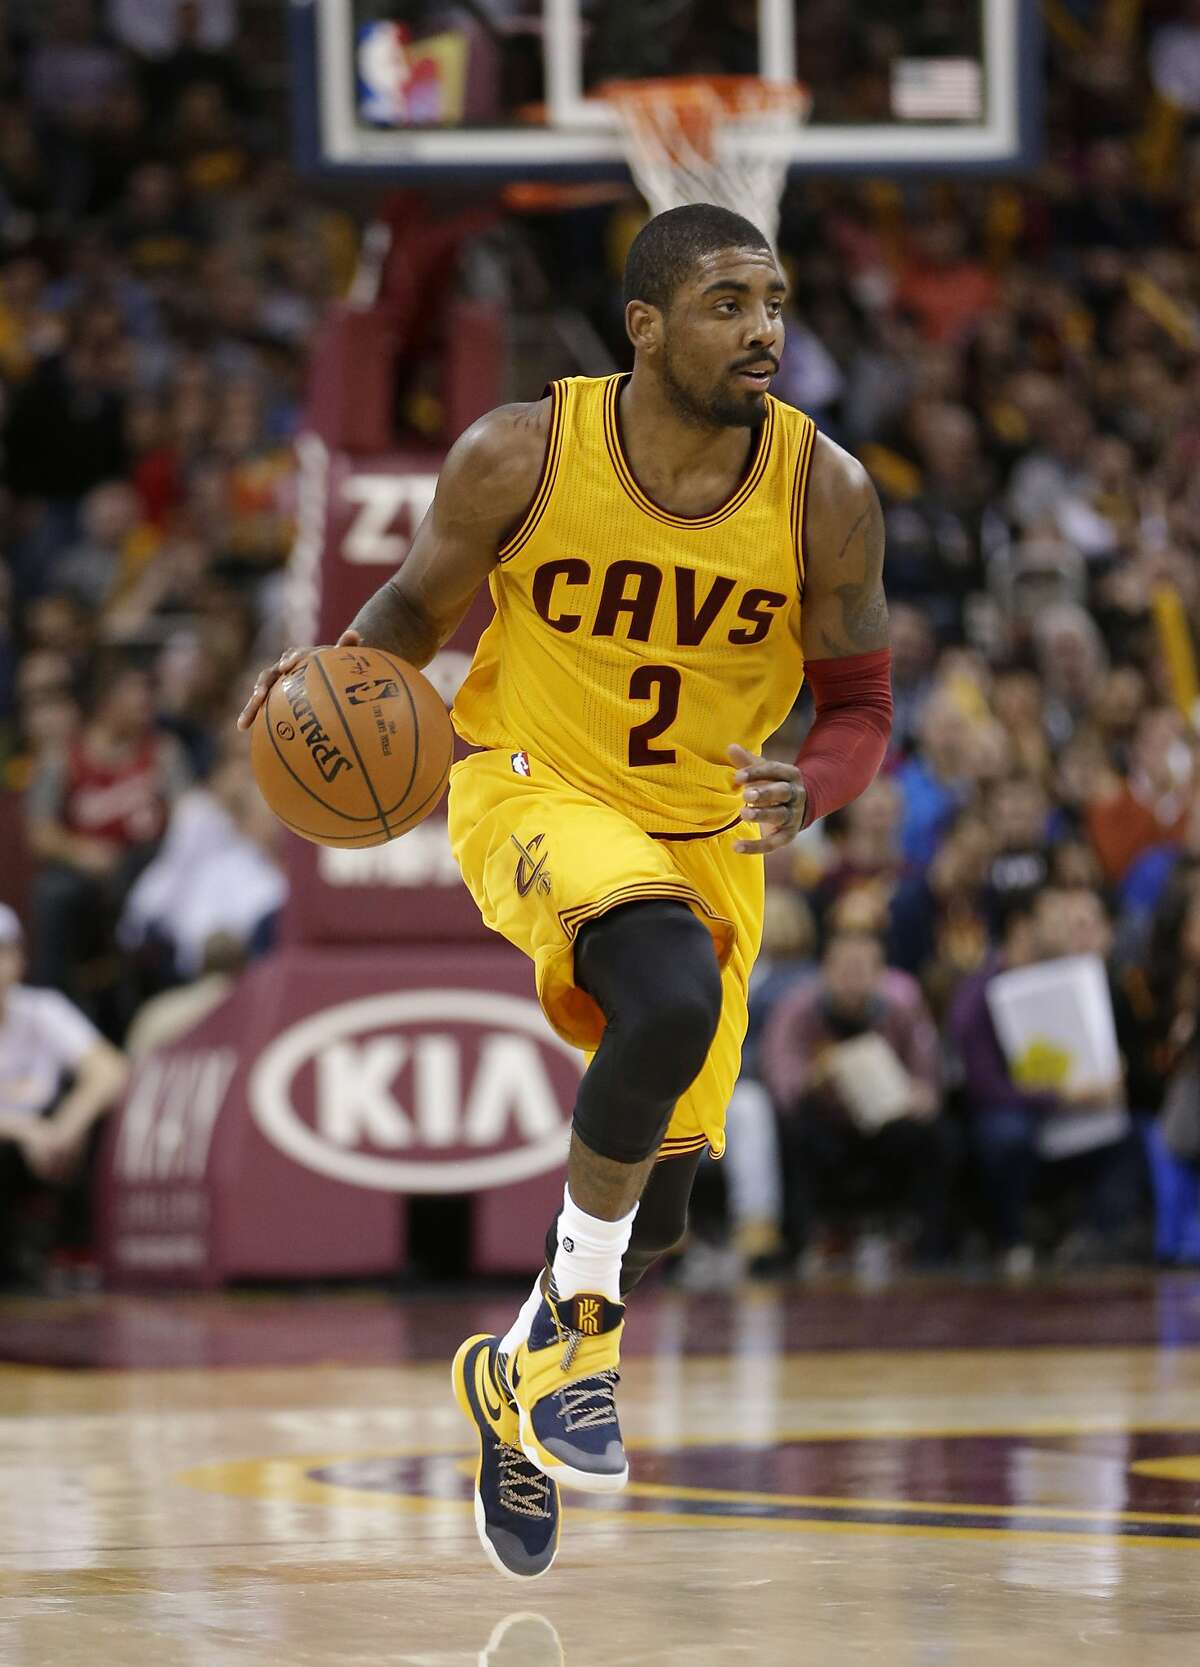 Cleveland Cavaliers' Kyrie Irving (2) drives against the New Orleans Pelicans in the second half of an NBA basketball game Saturday, Feb. 6, 2016, in Cleveland. (AP Photo/Tony Dejak)